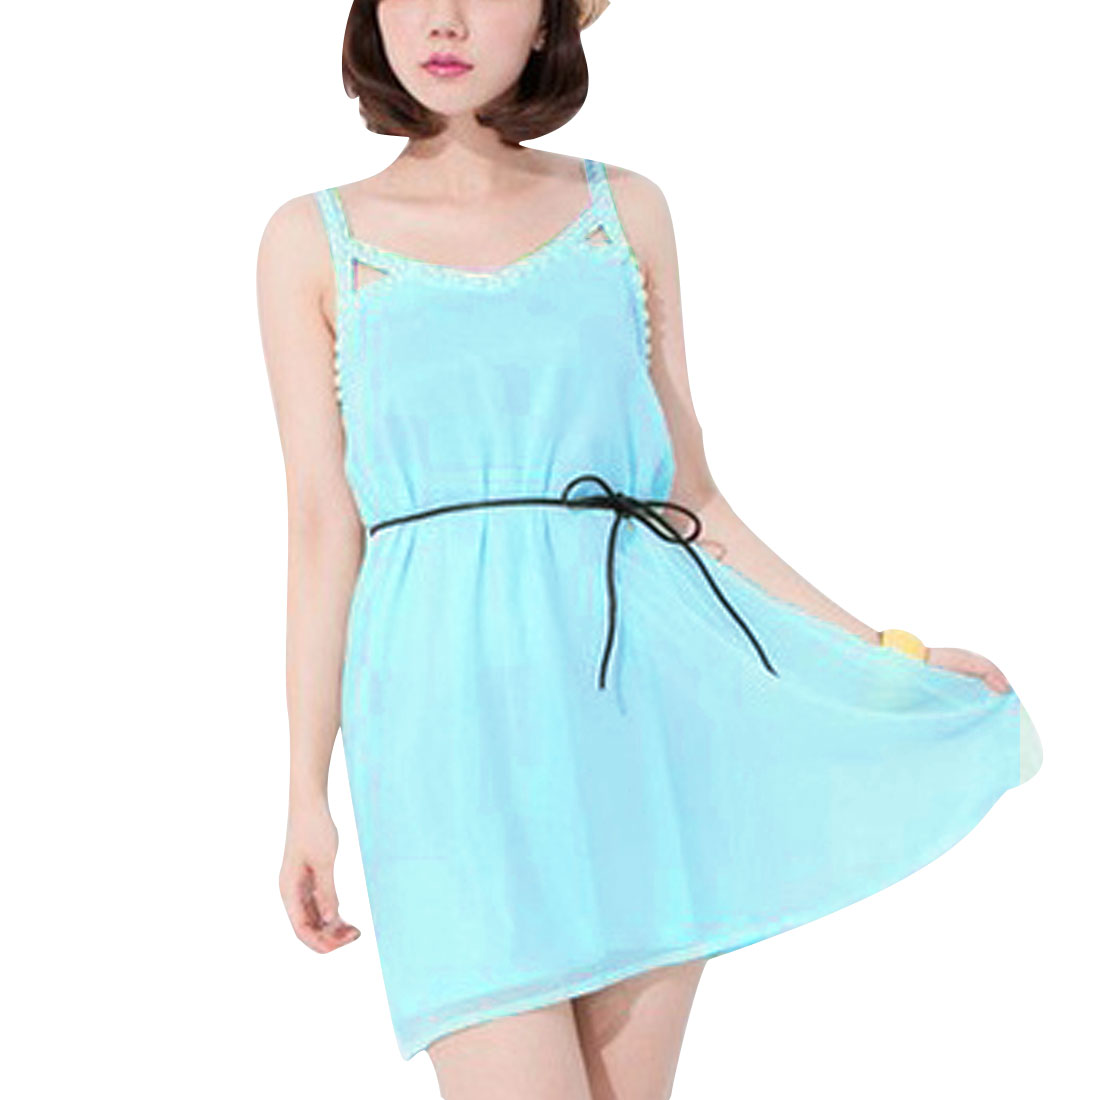 Ladies Round Neck Pullover Sleeveless Semi Sheer Dress Baby Blue S